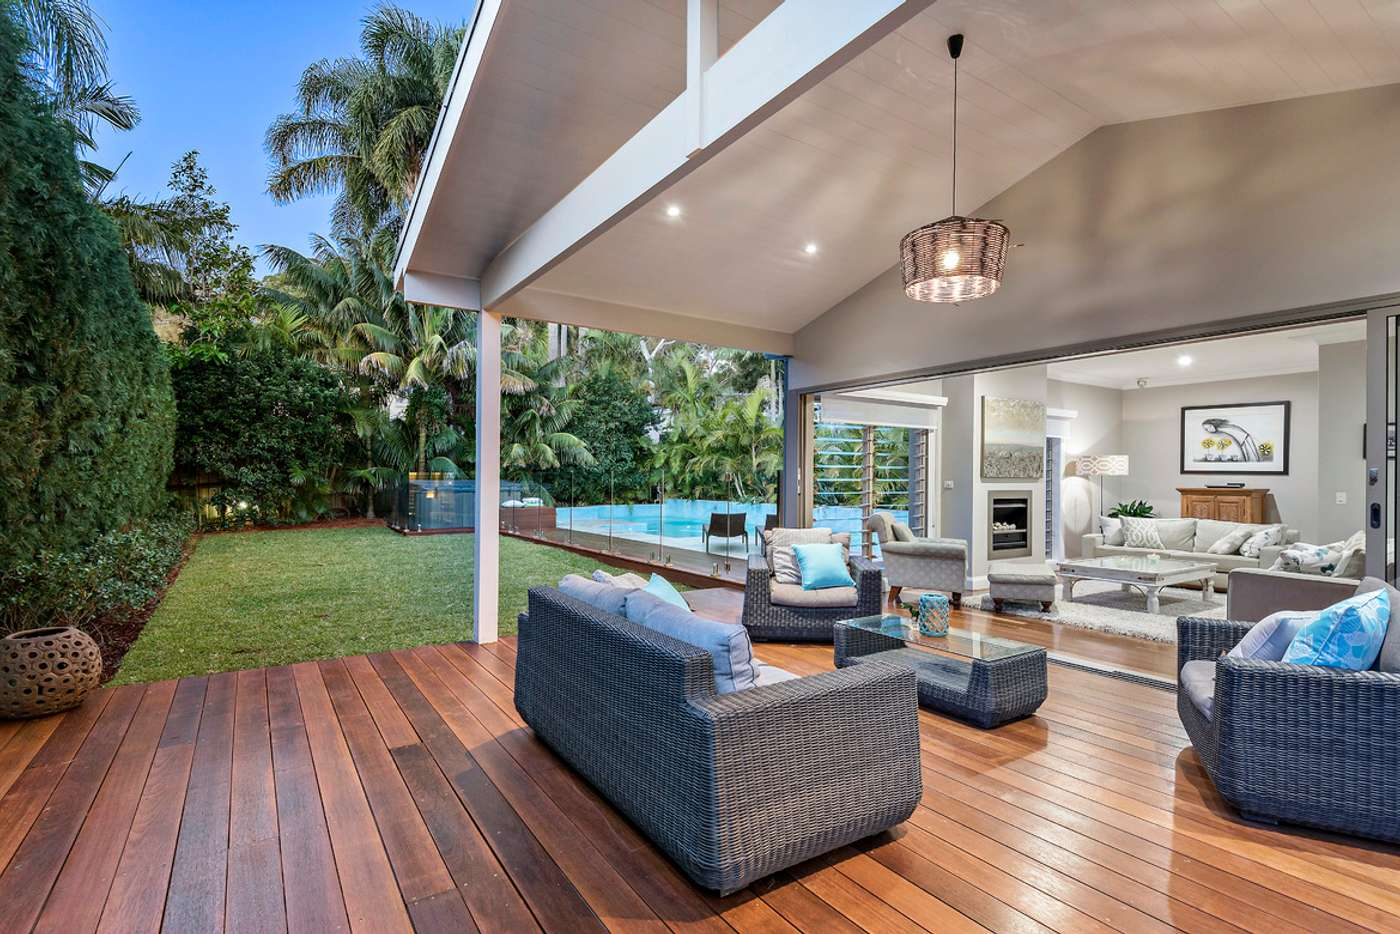 Main view of Homely house listing, 18 Monash Crescent, Clontarf NSW 2093